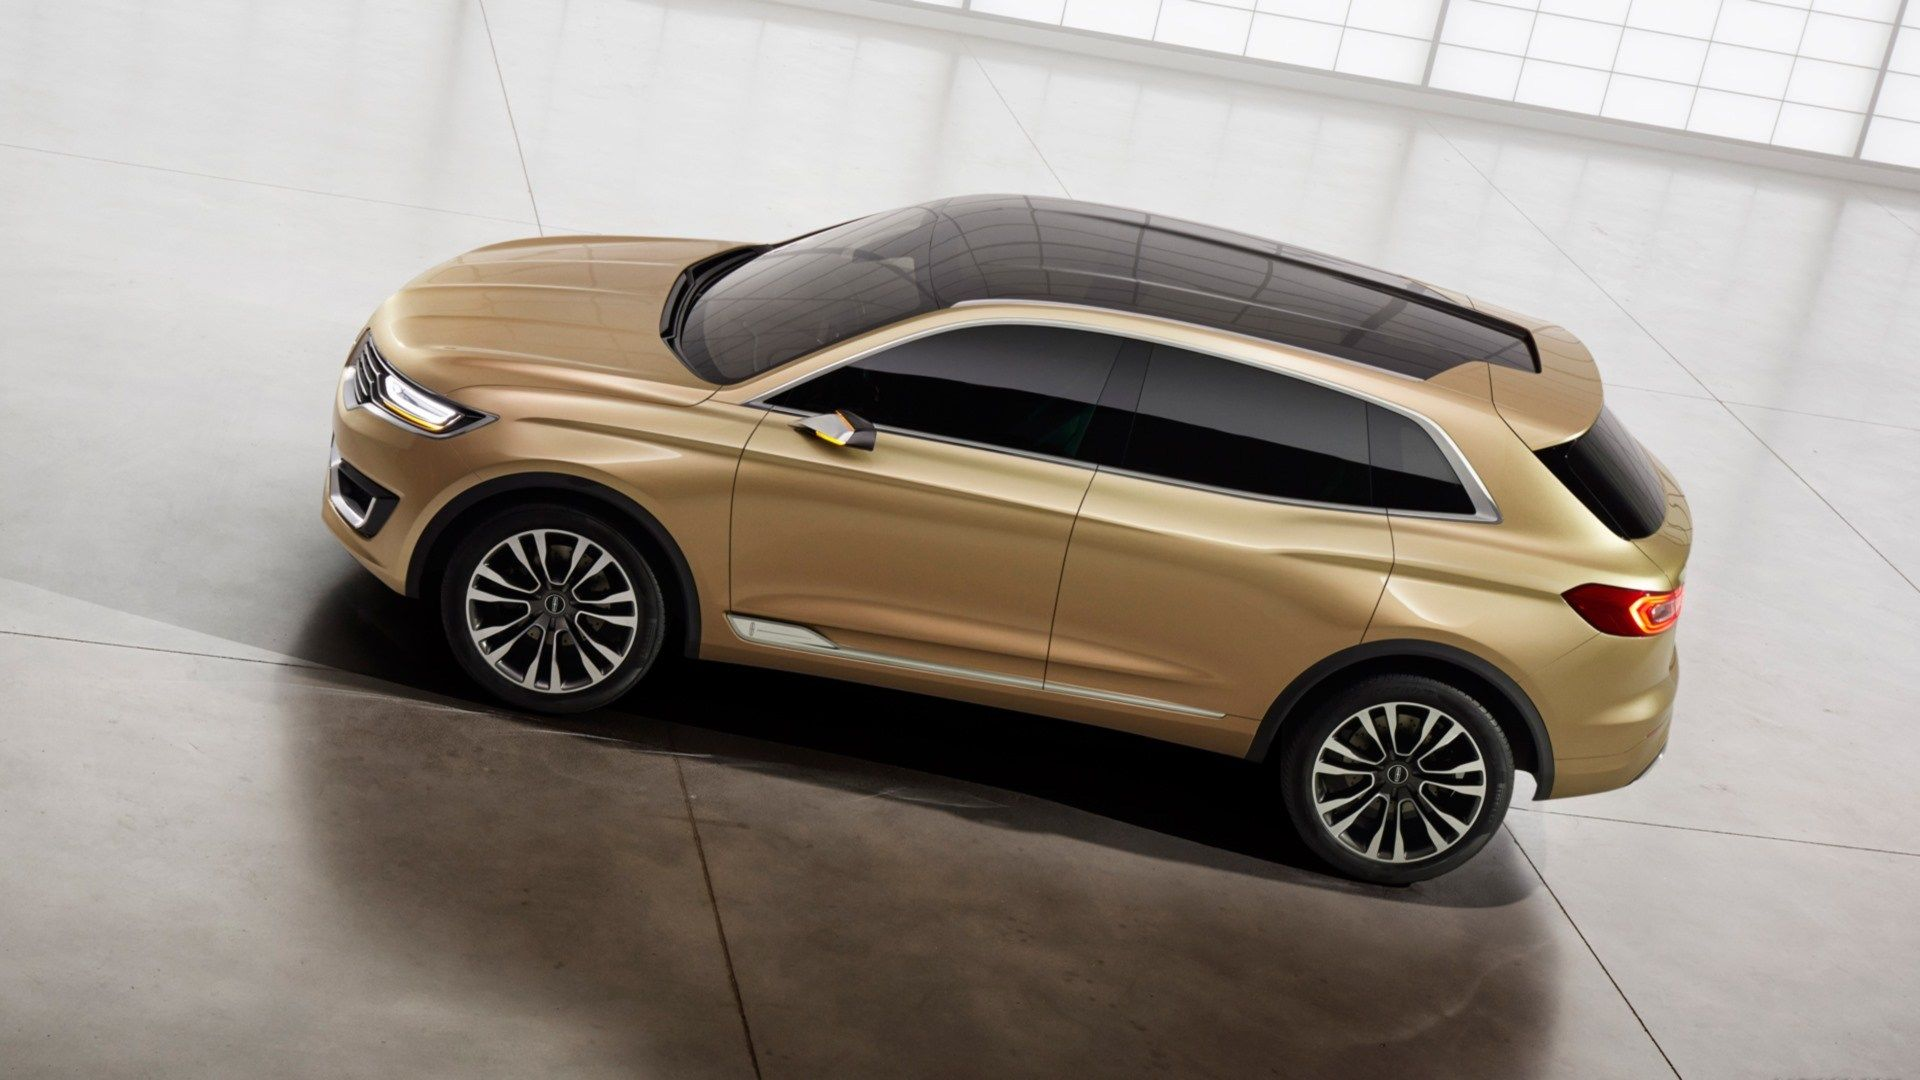 2014 lincoln mkc concept wallpaper backgrounds hd by collens thomas 2017 03 20